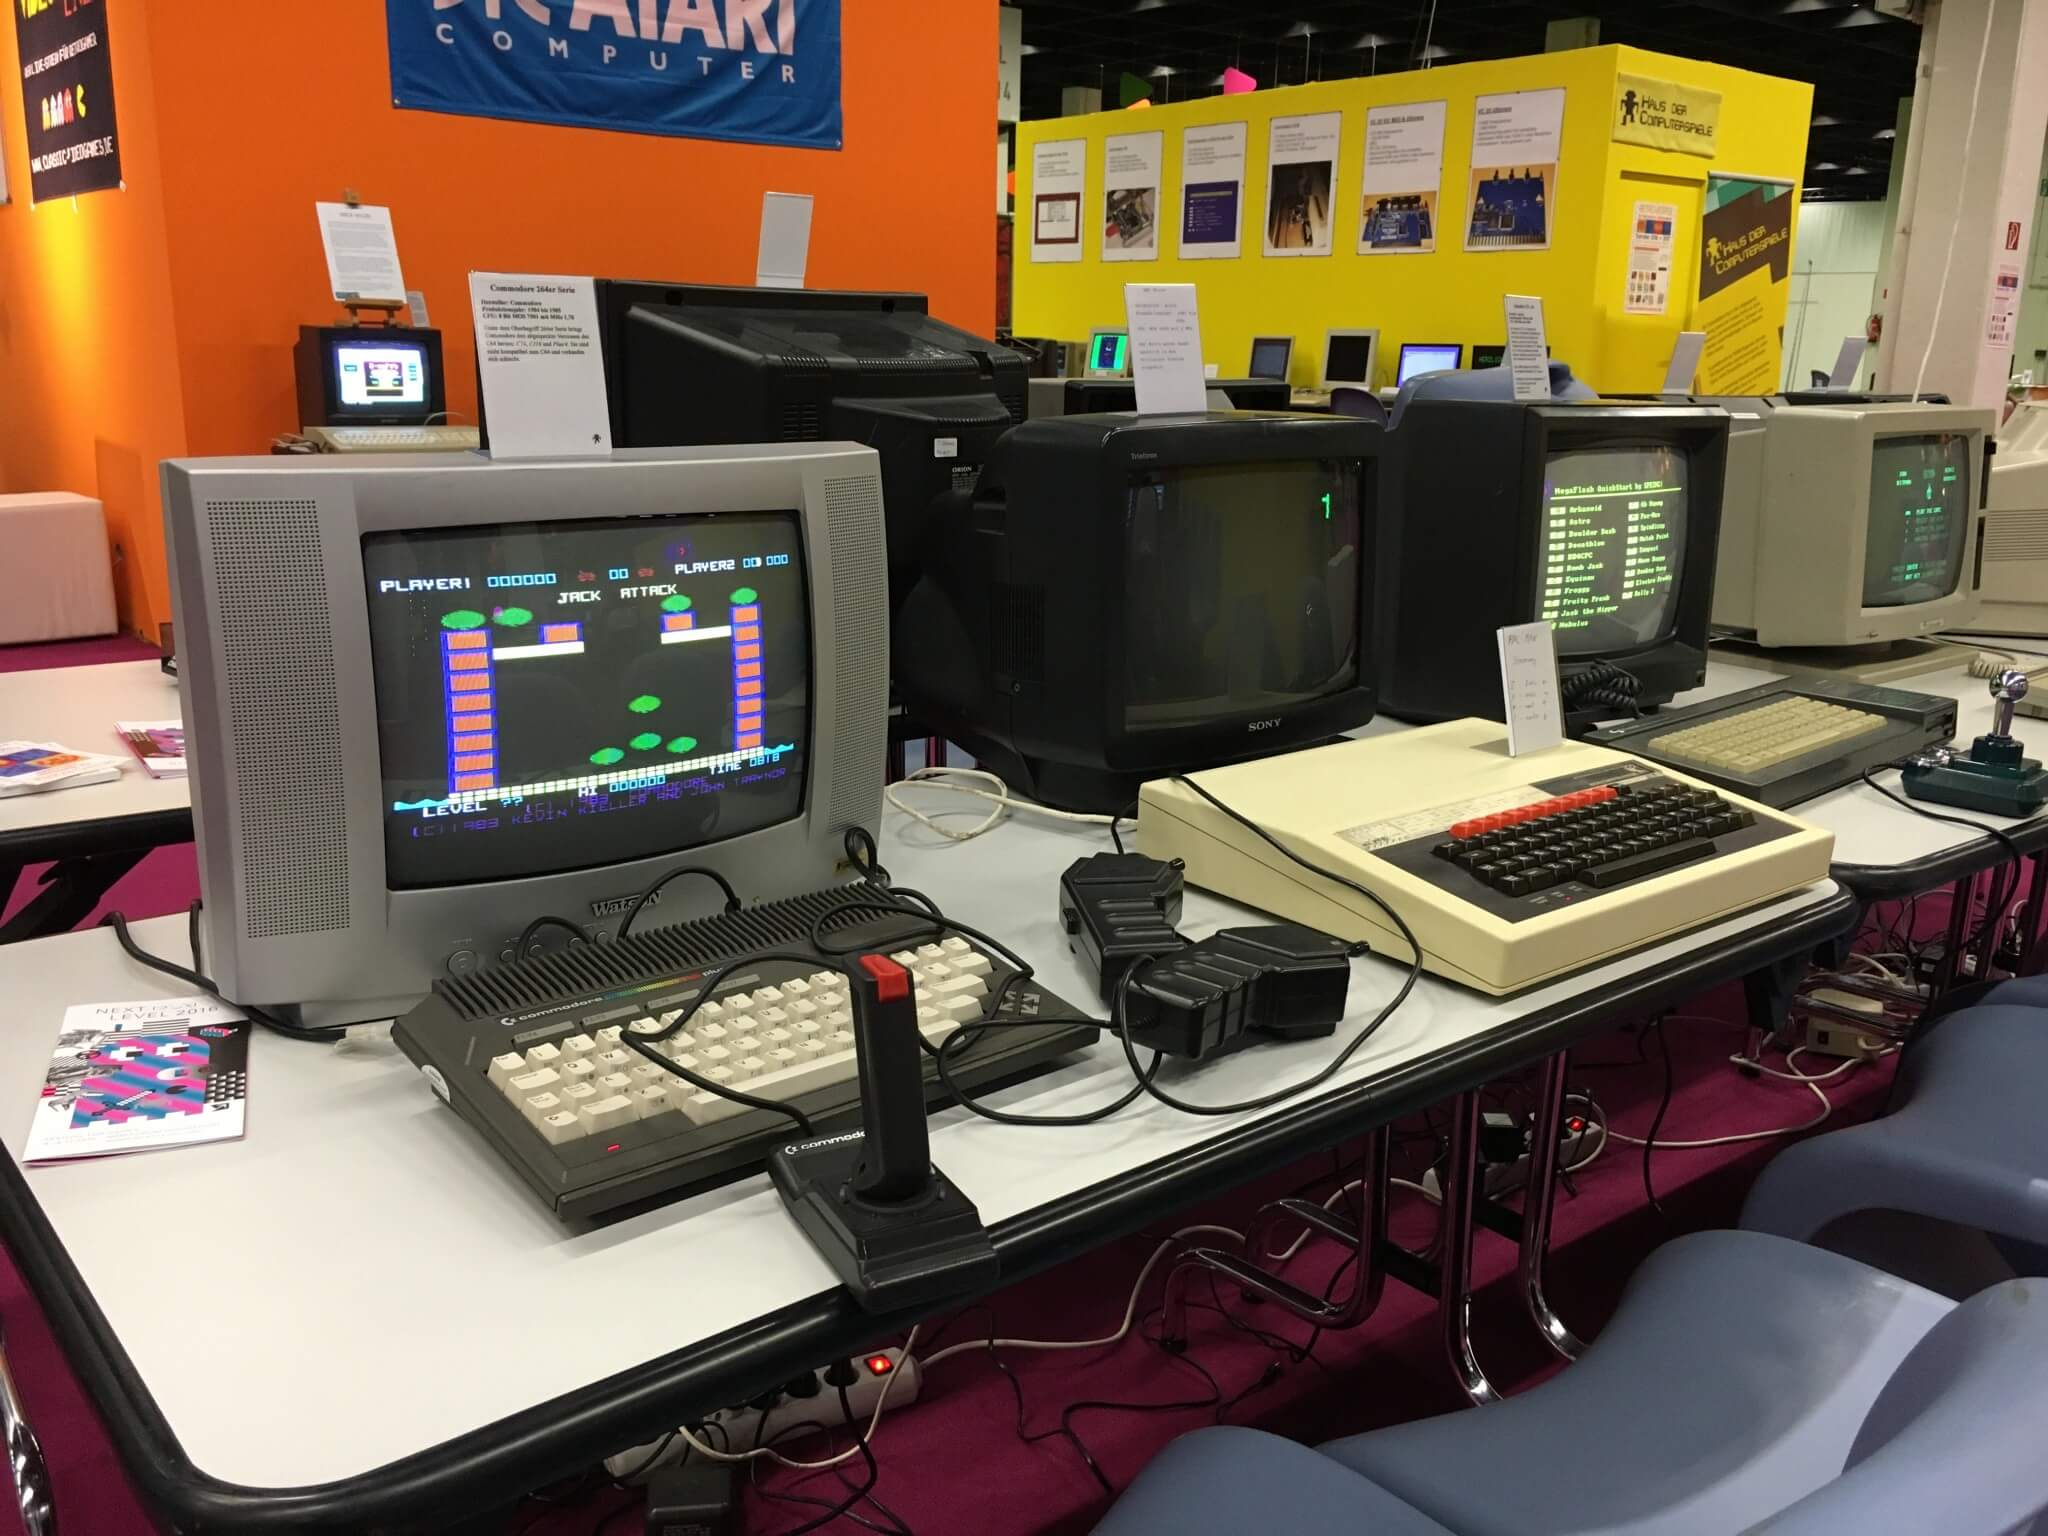 Gamescom 2016: So ein Commodore plus/4 (links) war mein erster Computer – David